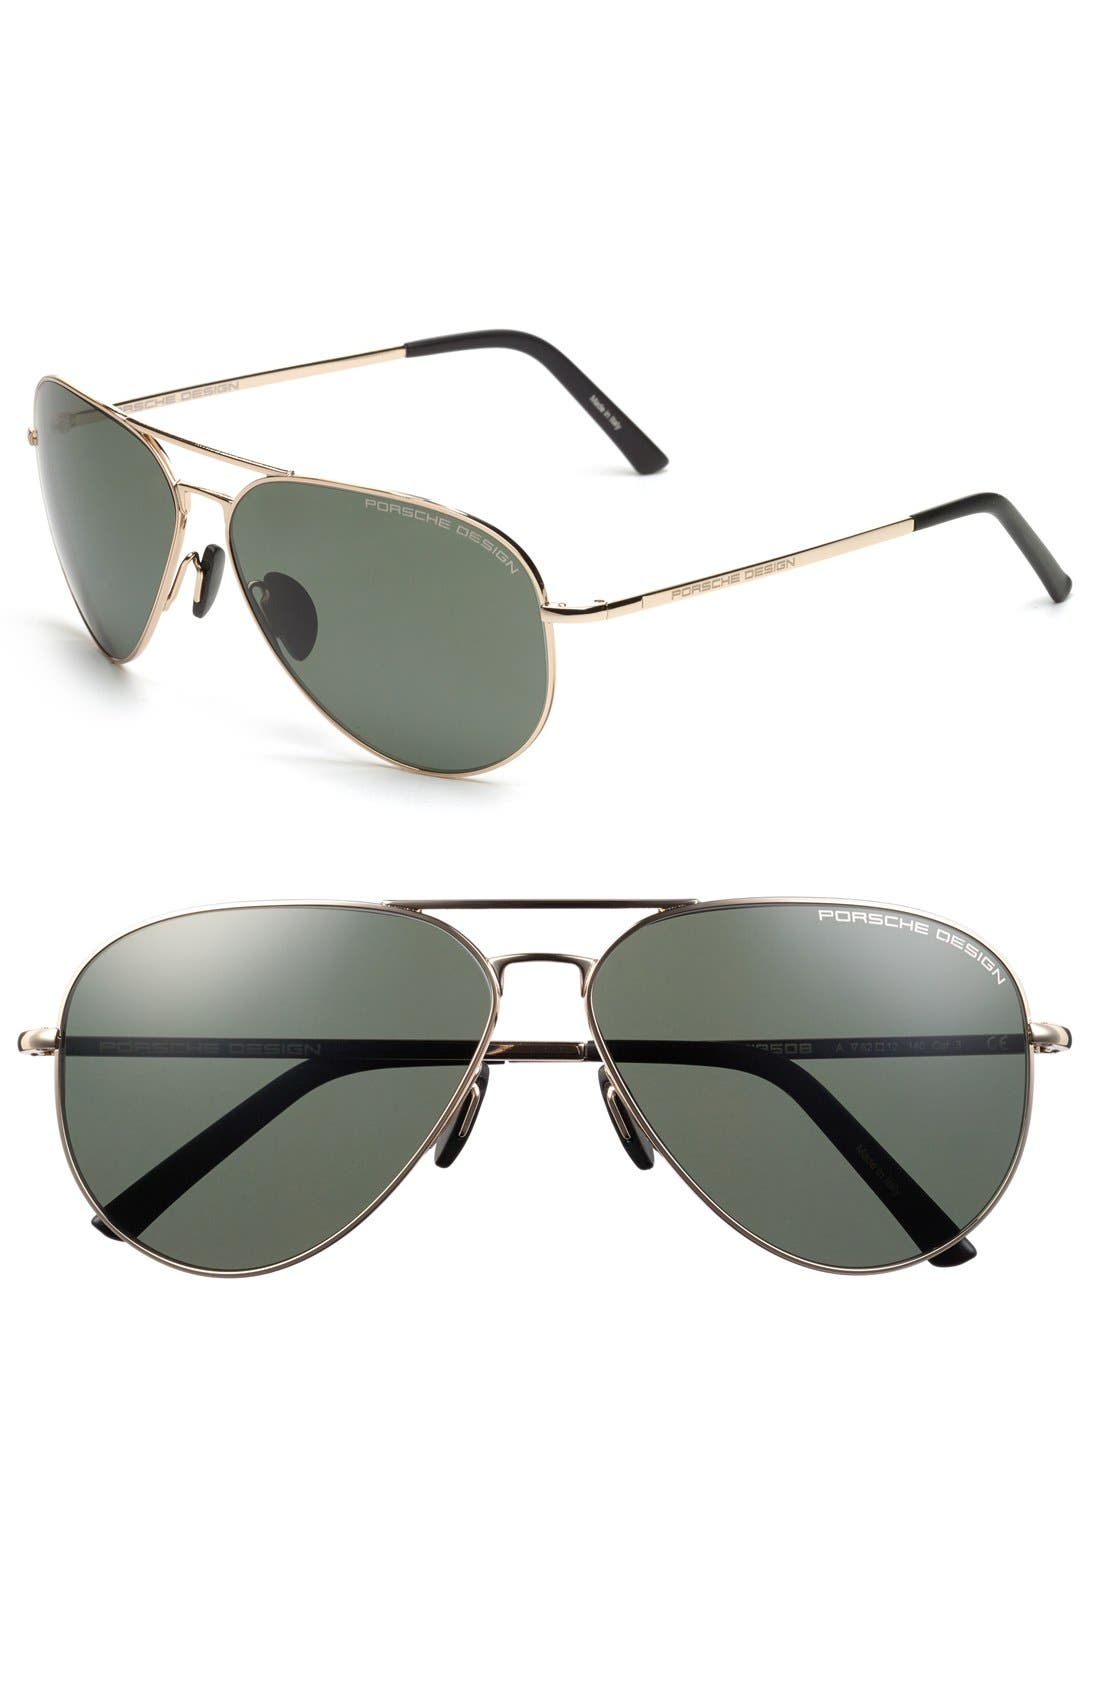 PORSCHE DESIGN 'P8508' 62mm Polarized Aviator Sunglasses